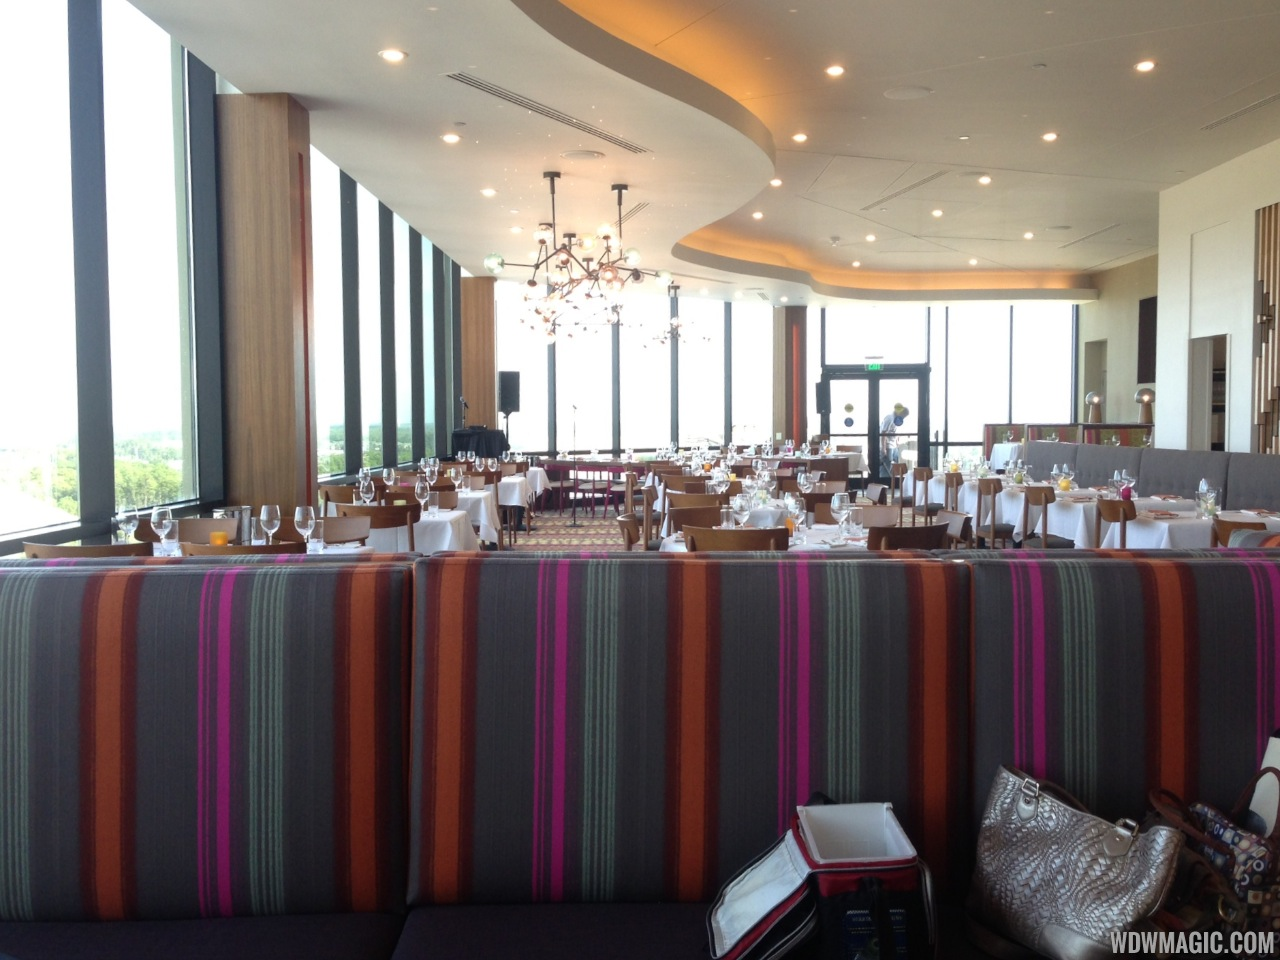 Inside the newly refurbished California Grill dining room